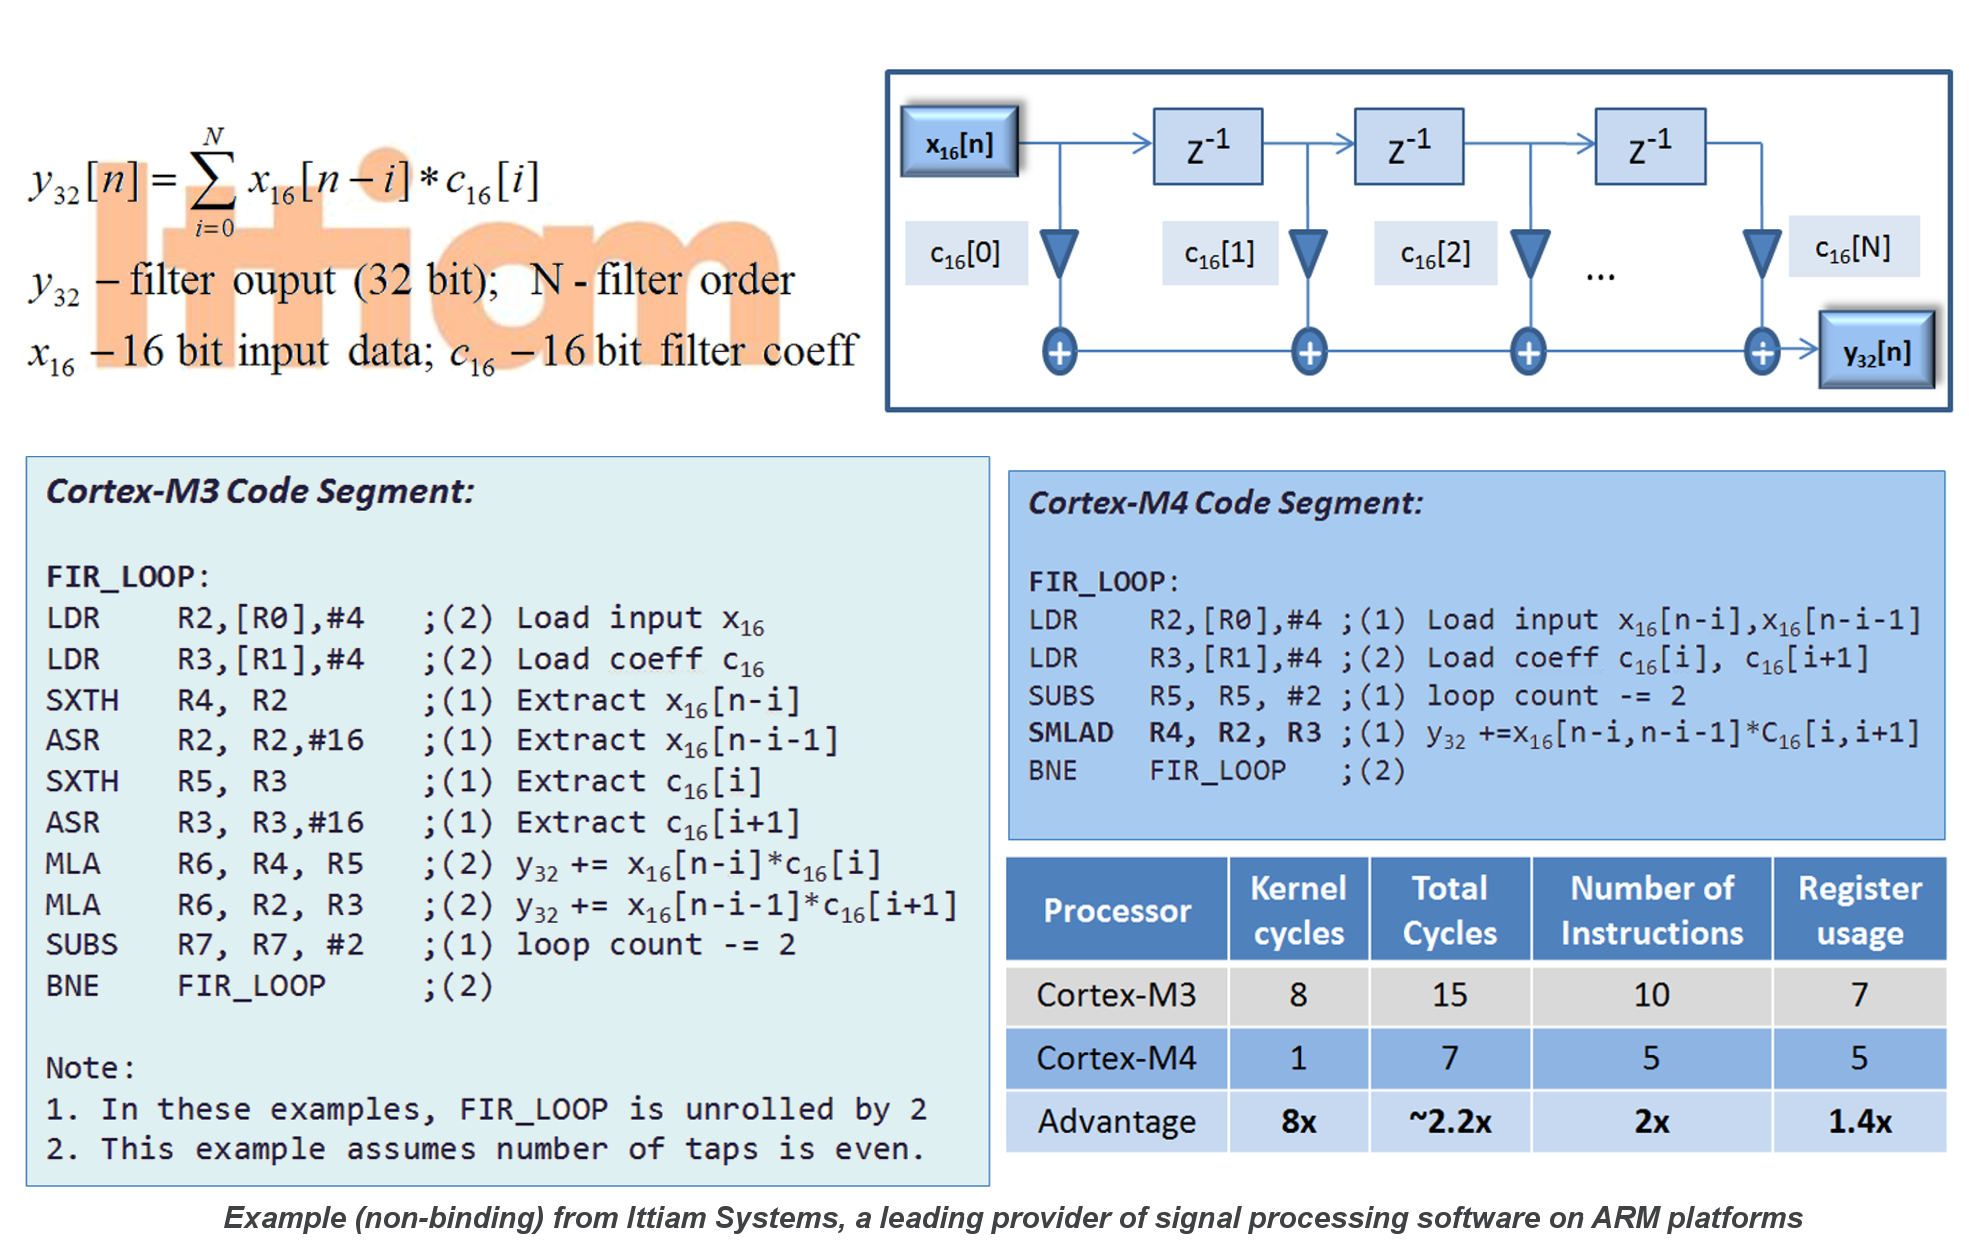 An Introduction To The Cortex-M4 Processor Architecture